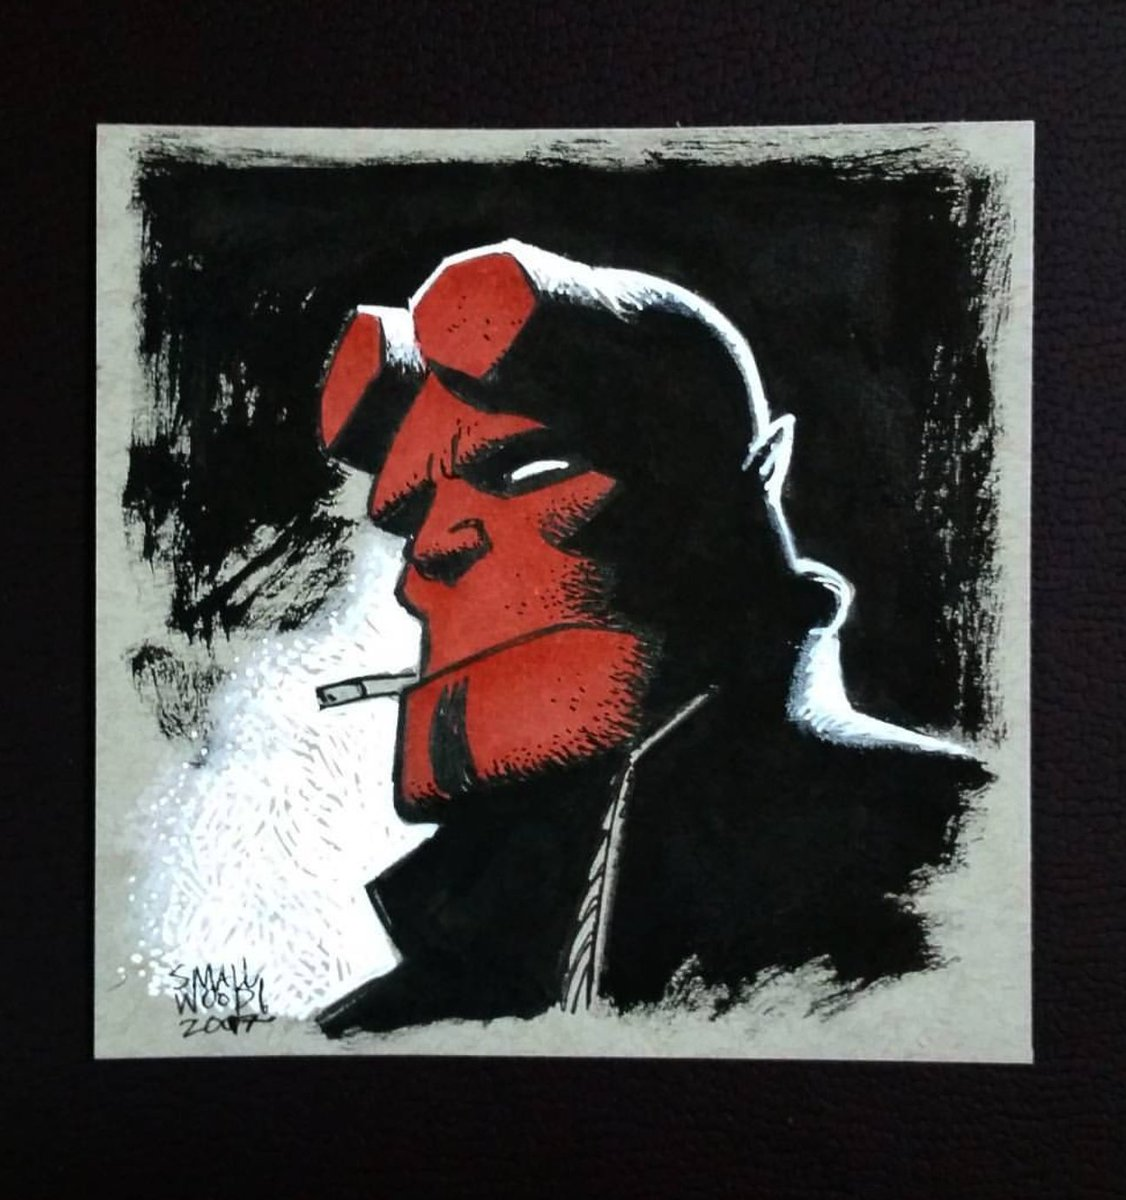 Hellboy sketch by the amazing Greg Smallwood. #artlife pic.twitter.com/dYB4XpRNi3